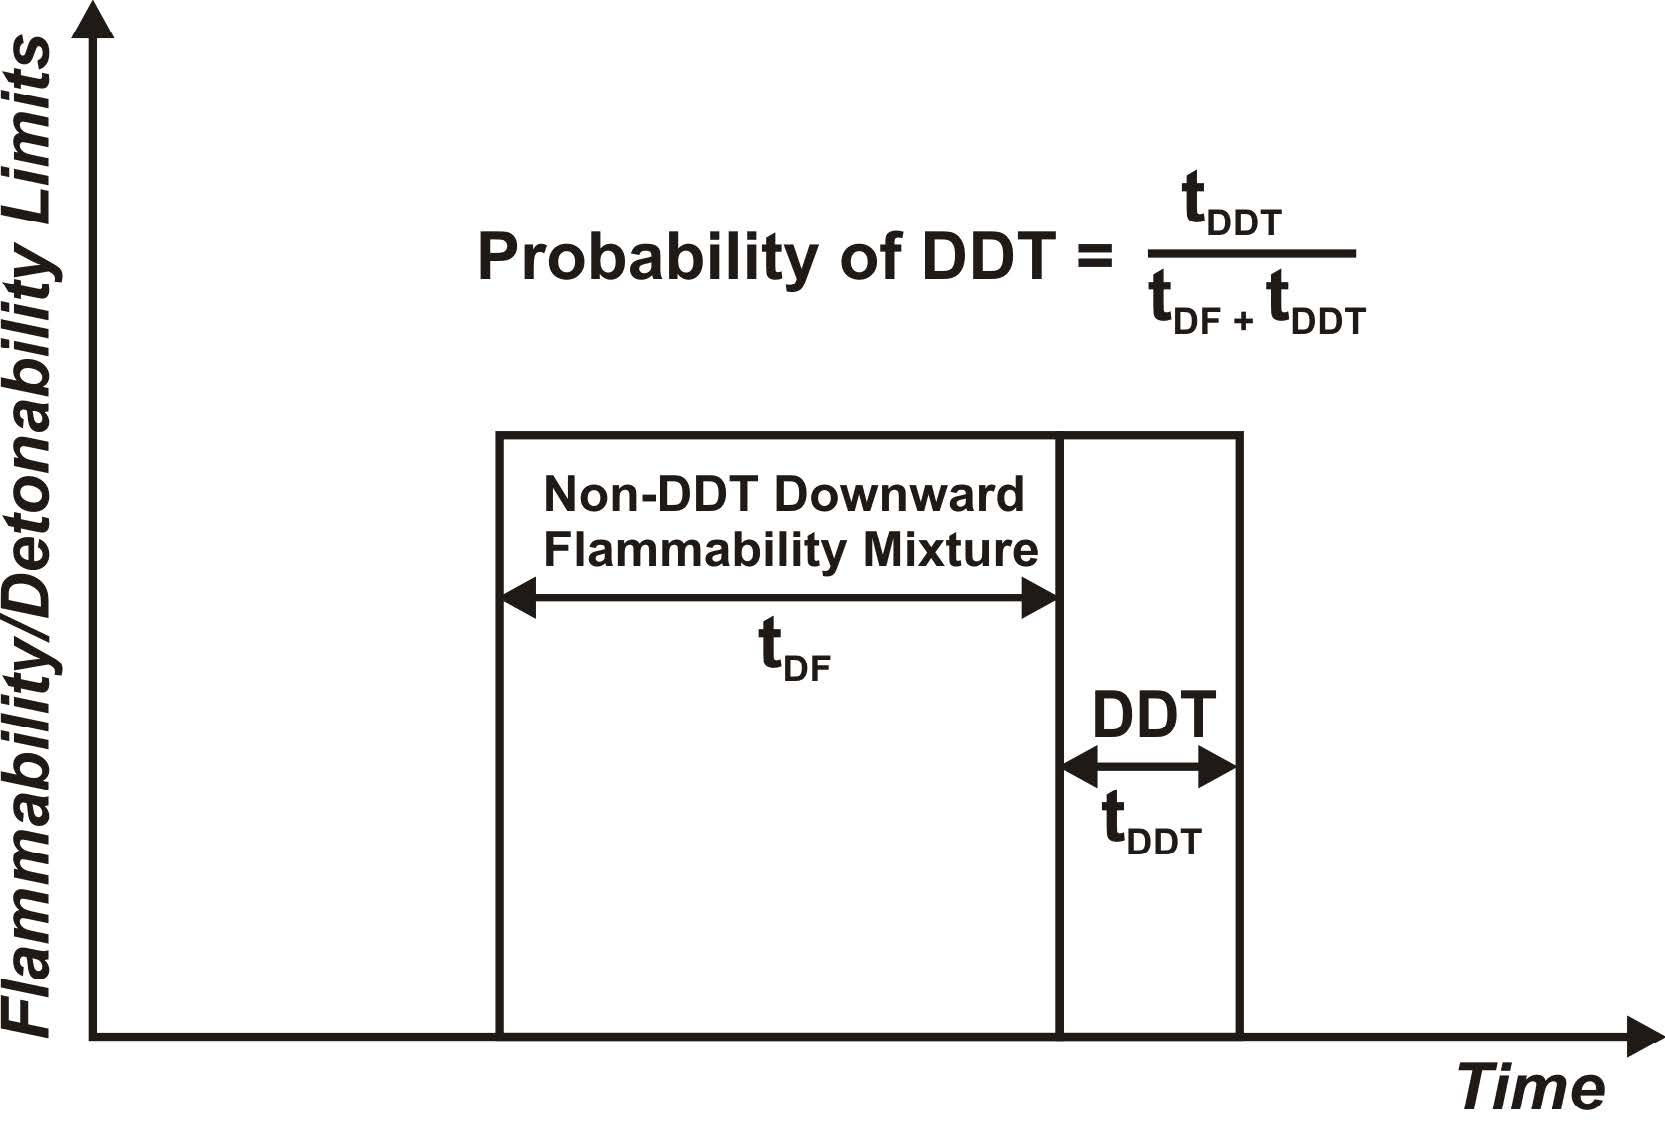 N-16-01_The_Probability_of_DDT_During_Severe_Accidents.jpg